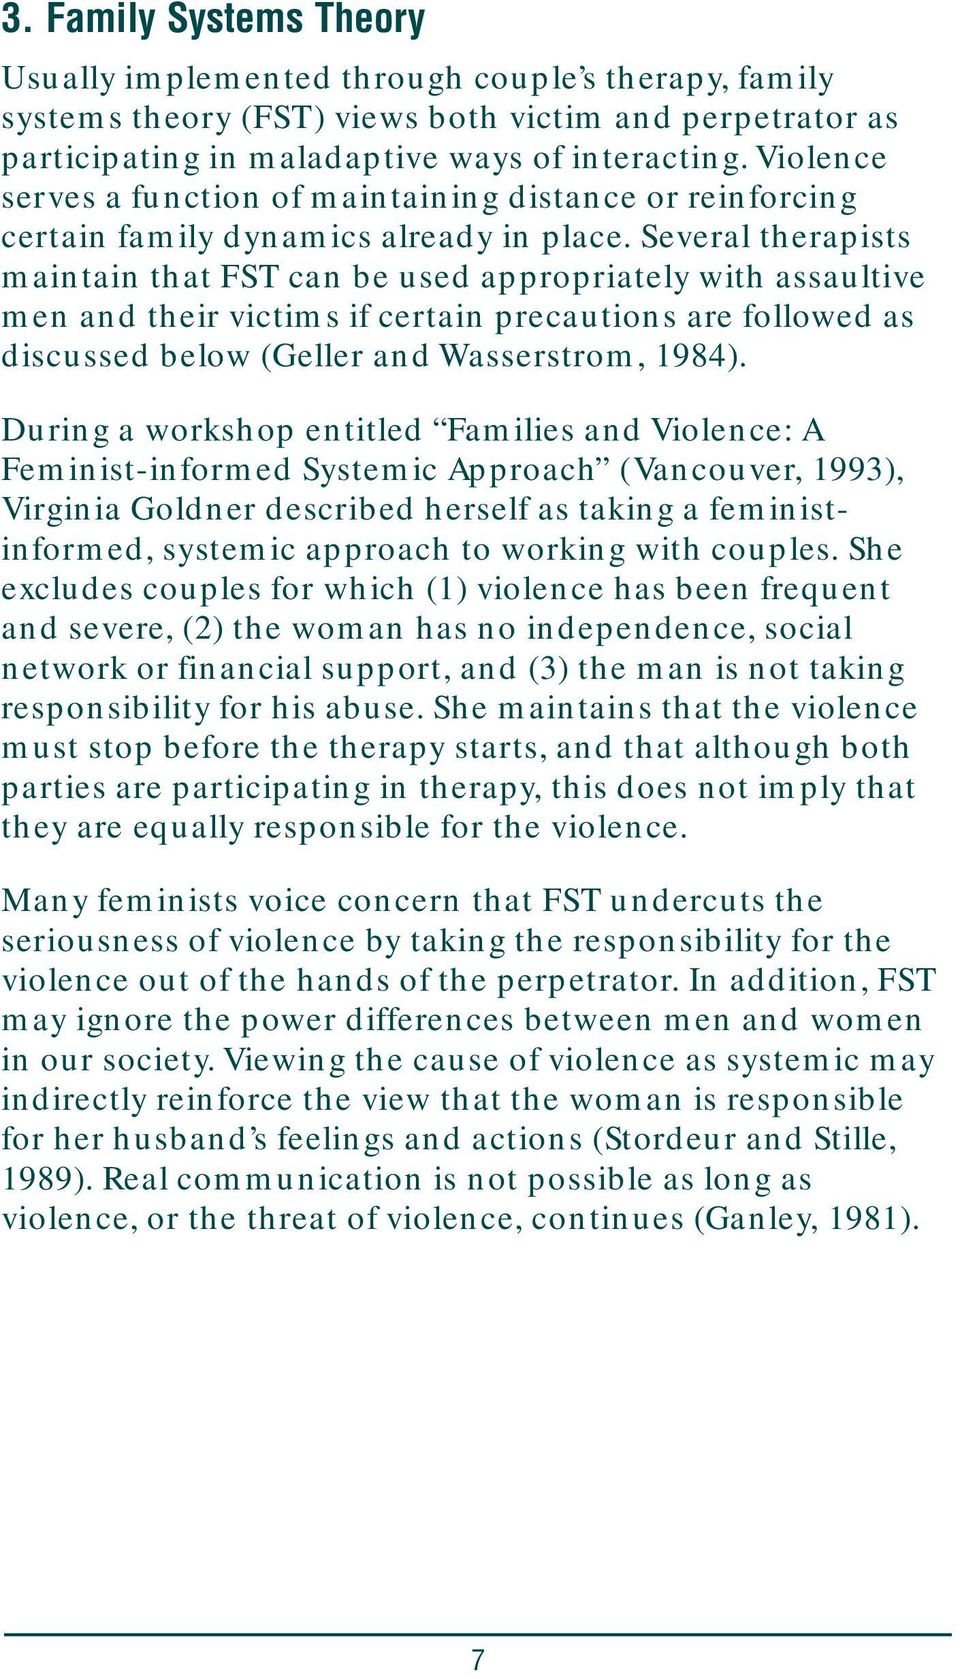 Several therapists maintain that FST can be used appropriately with assaultive men and their victims if certain precautions are followed as discussed below (Geller and Wasserstrom, 1984).